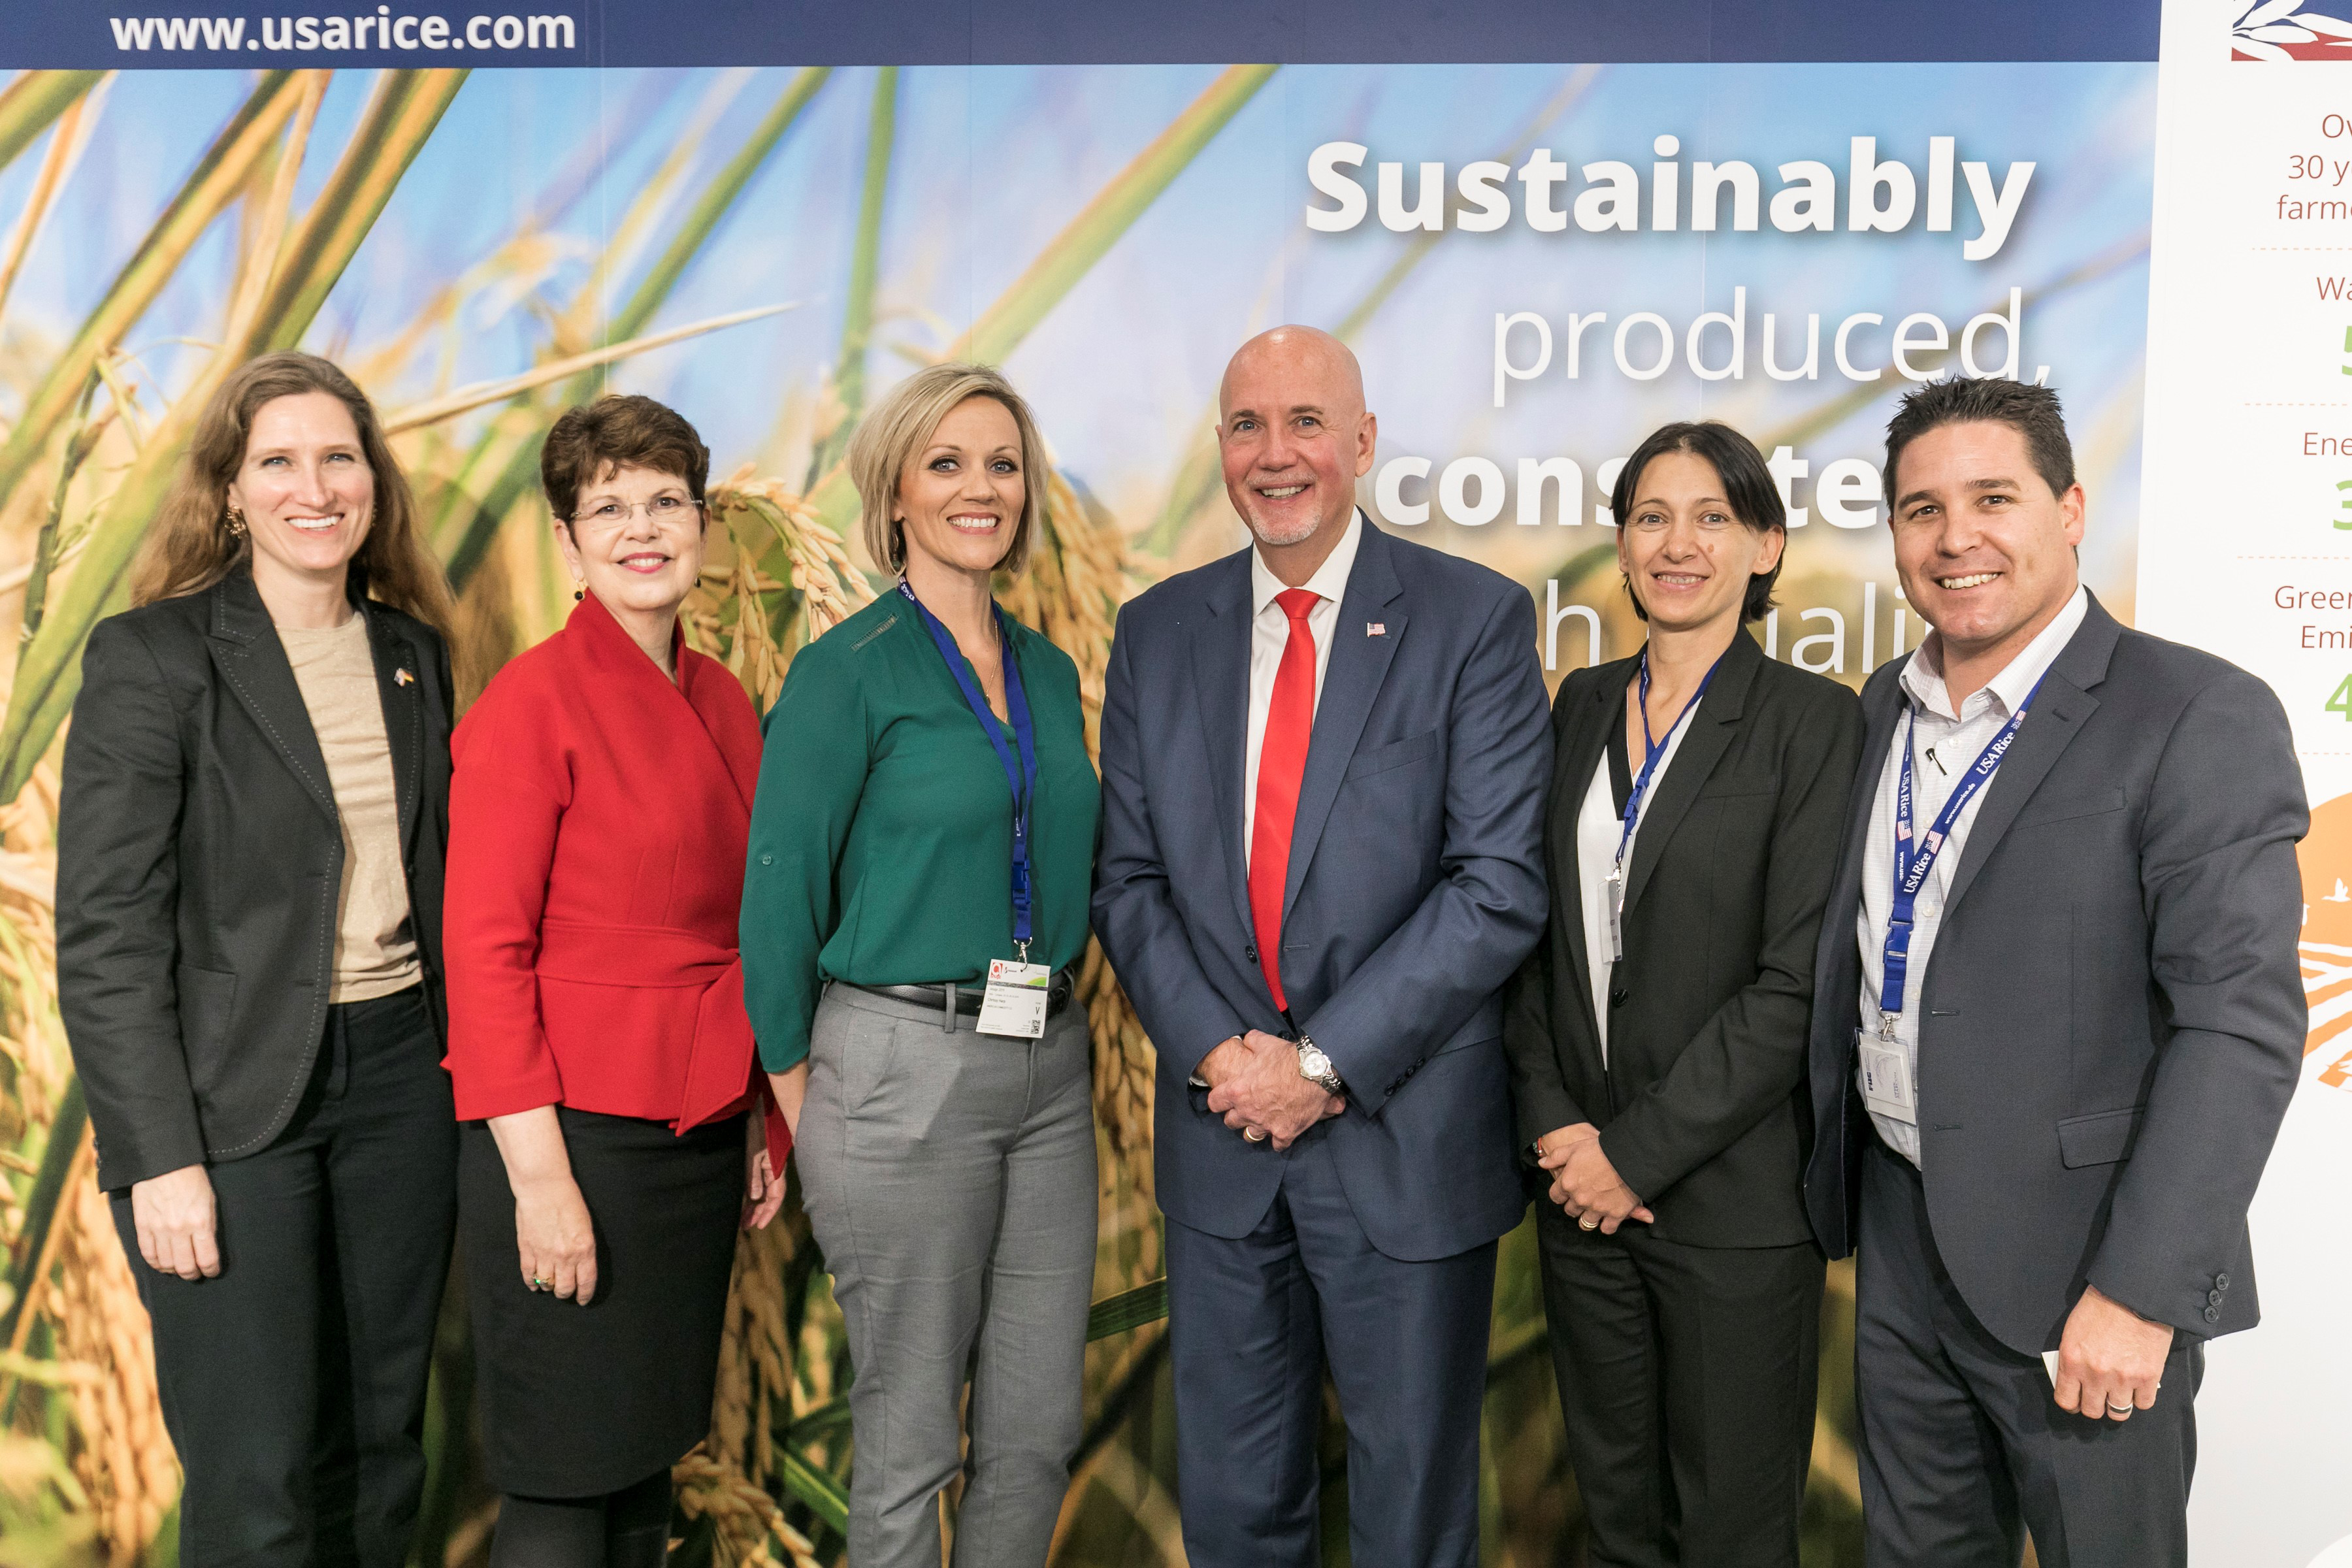 Group shot of people wearing business attire standing in front a poster of rice in the field with sustainability messaging, Kolnmesse photo